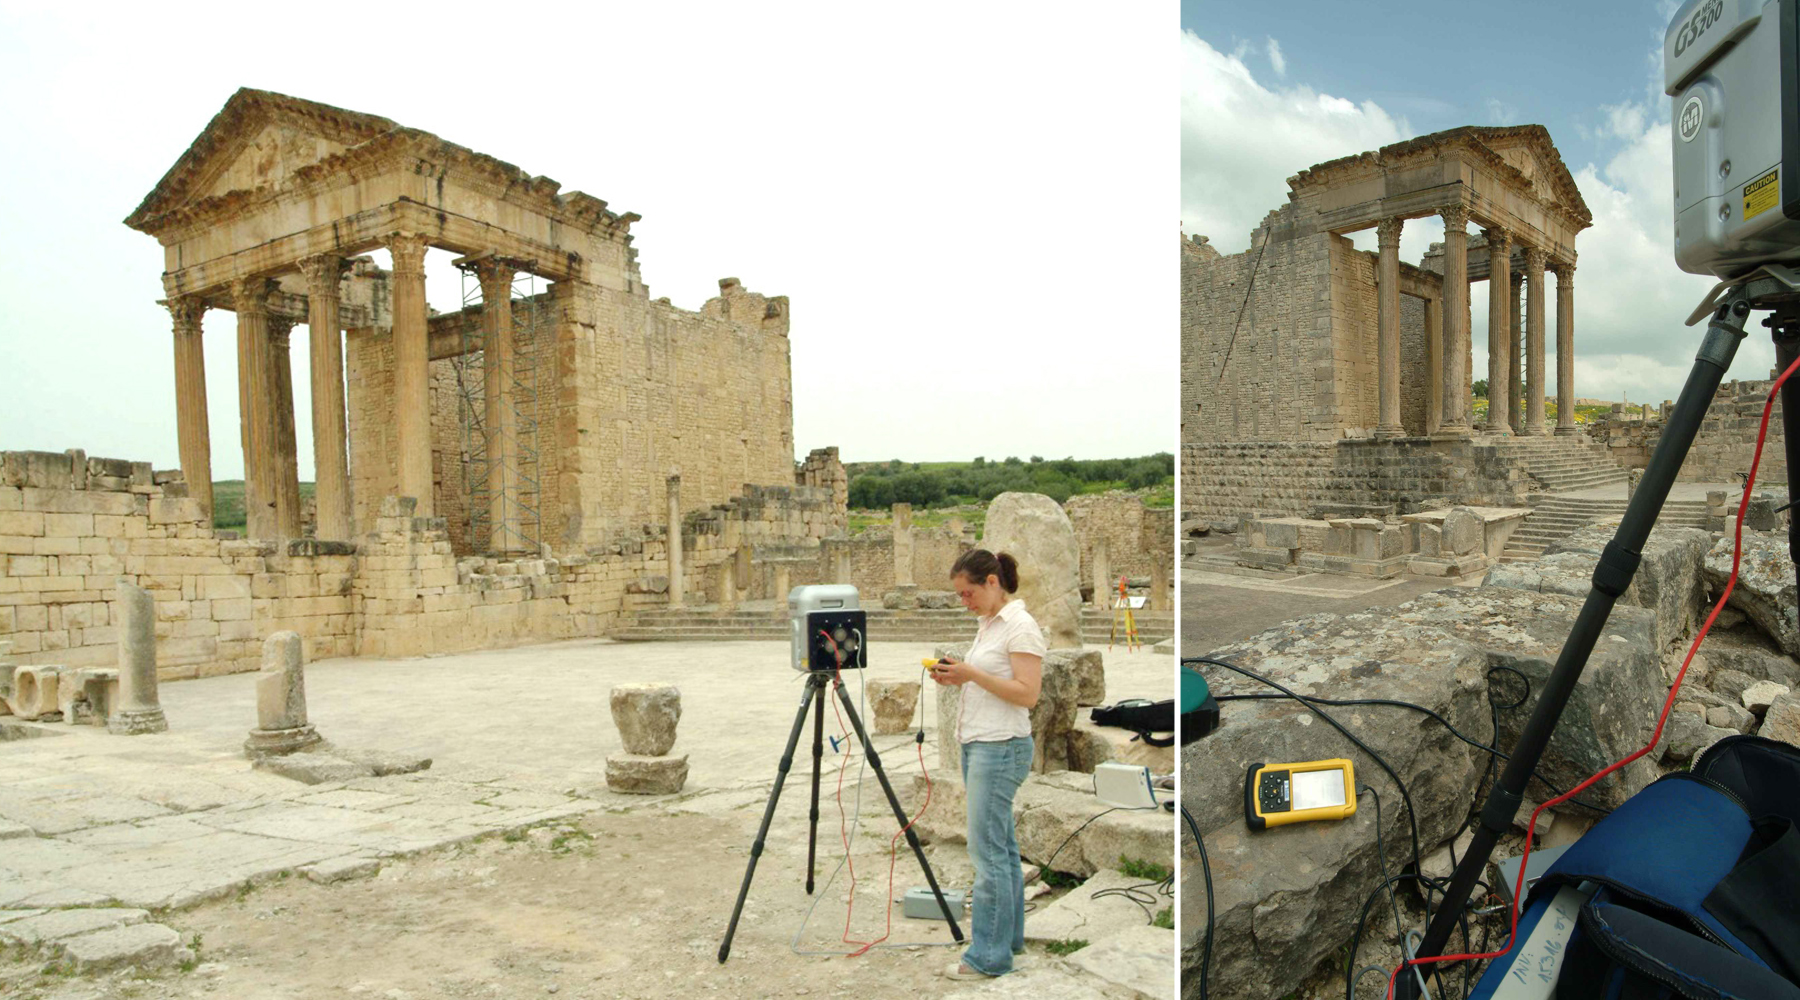 12 Capitol of Dougga, Tunisie - Laser scanning survey